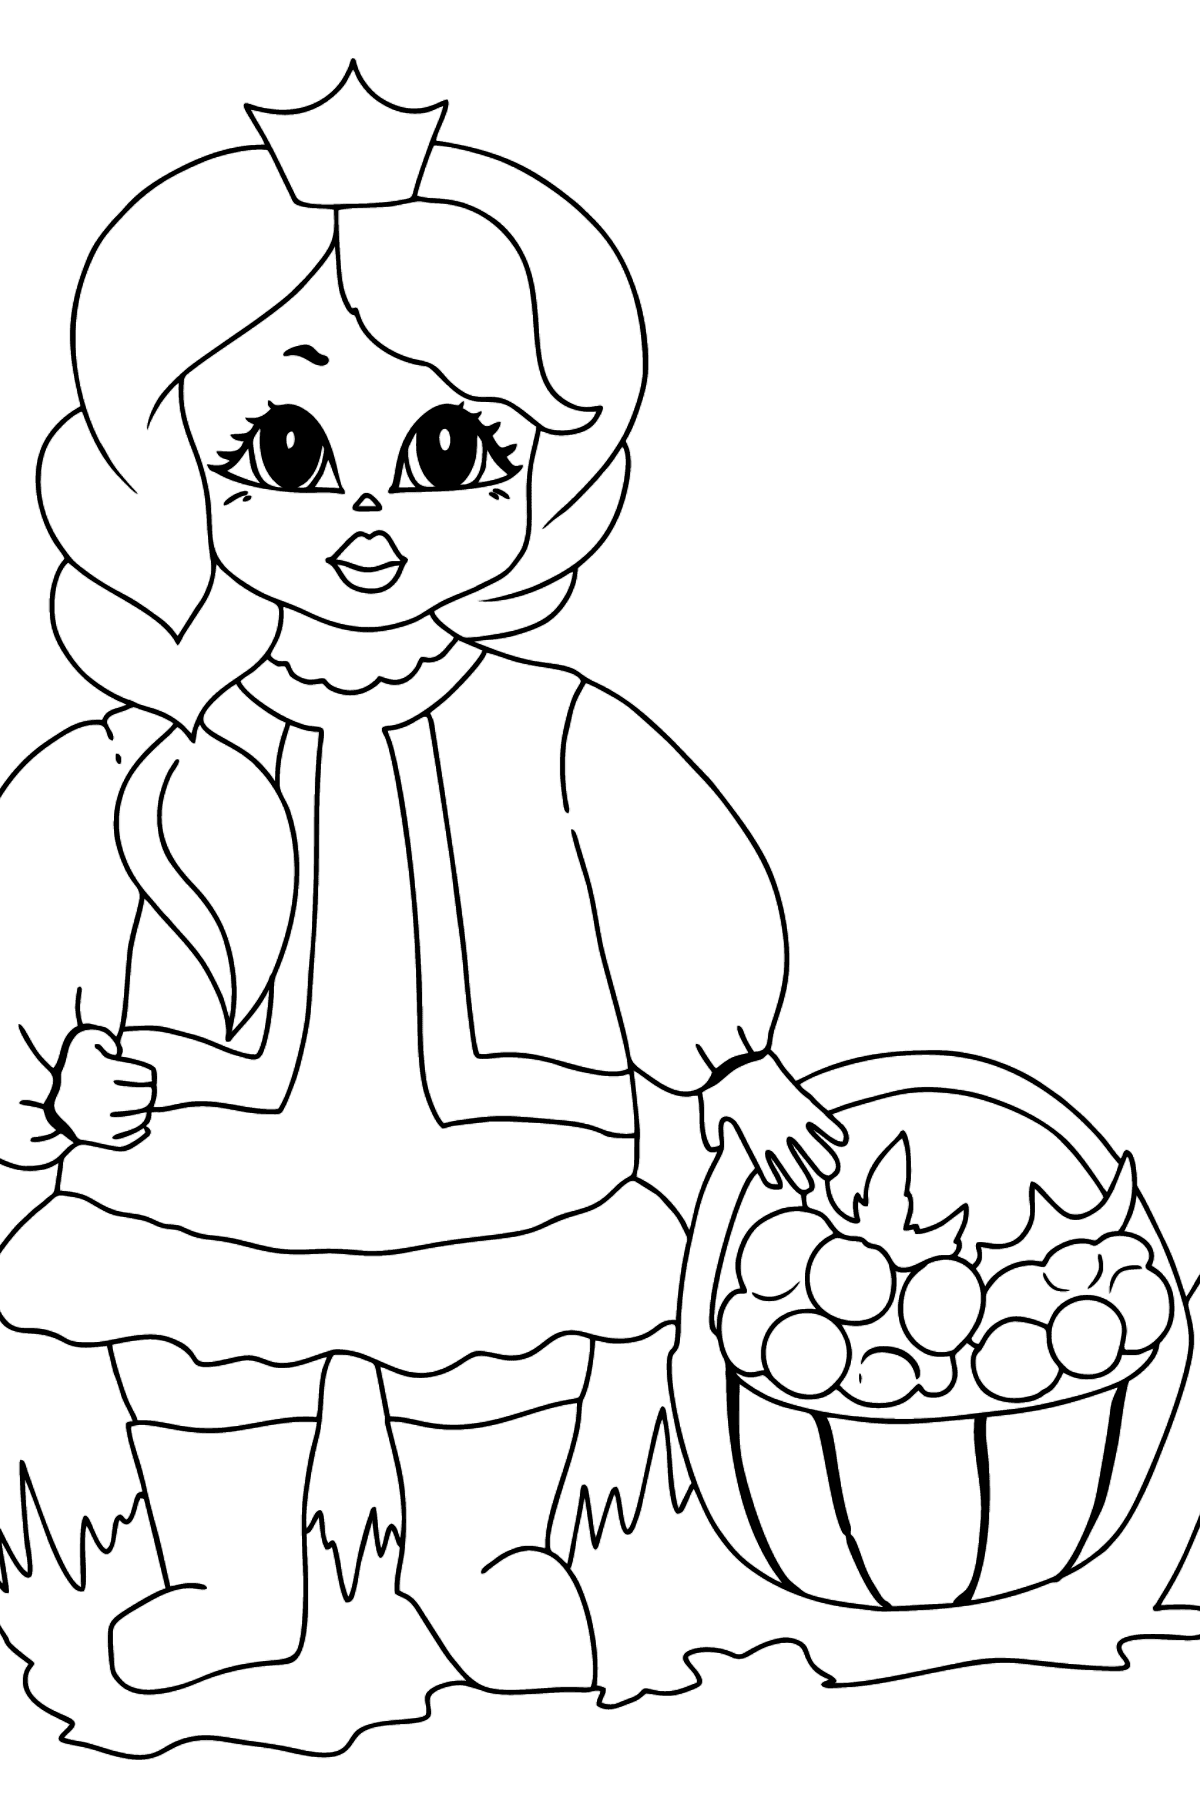 Coloring Page - A Princess with a Basket - For Girls - Coloring Pages for Kids